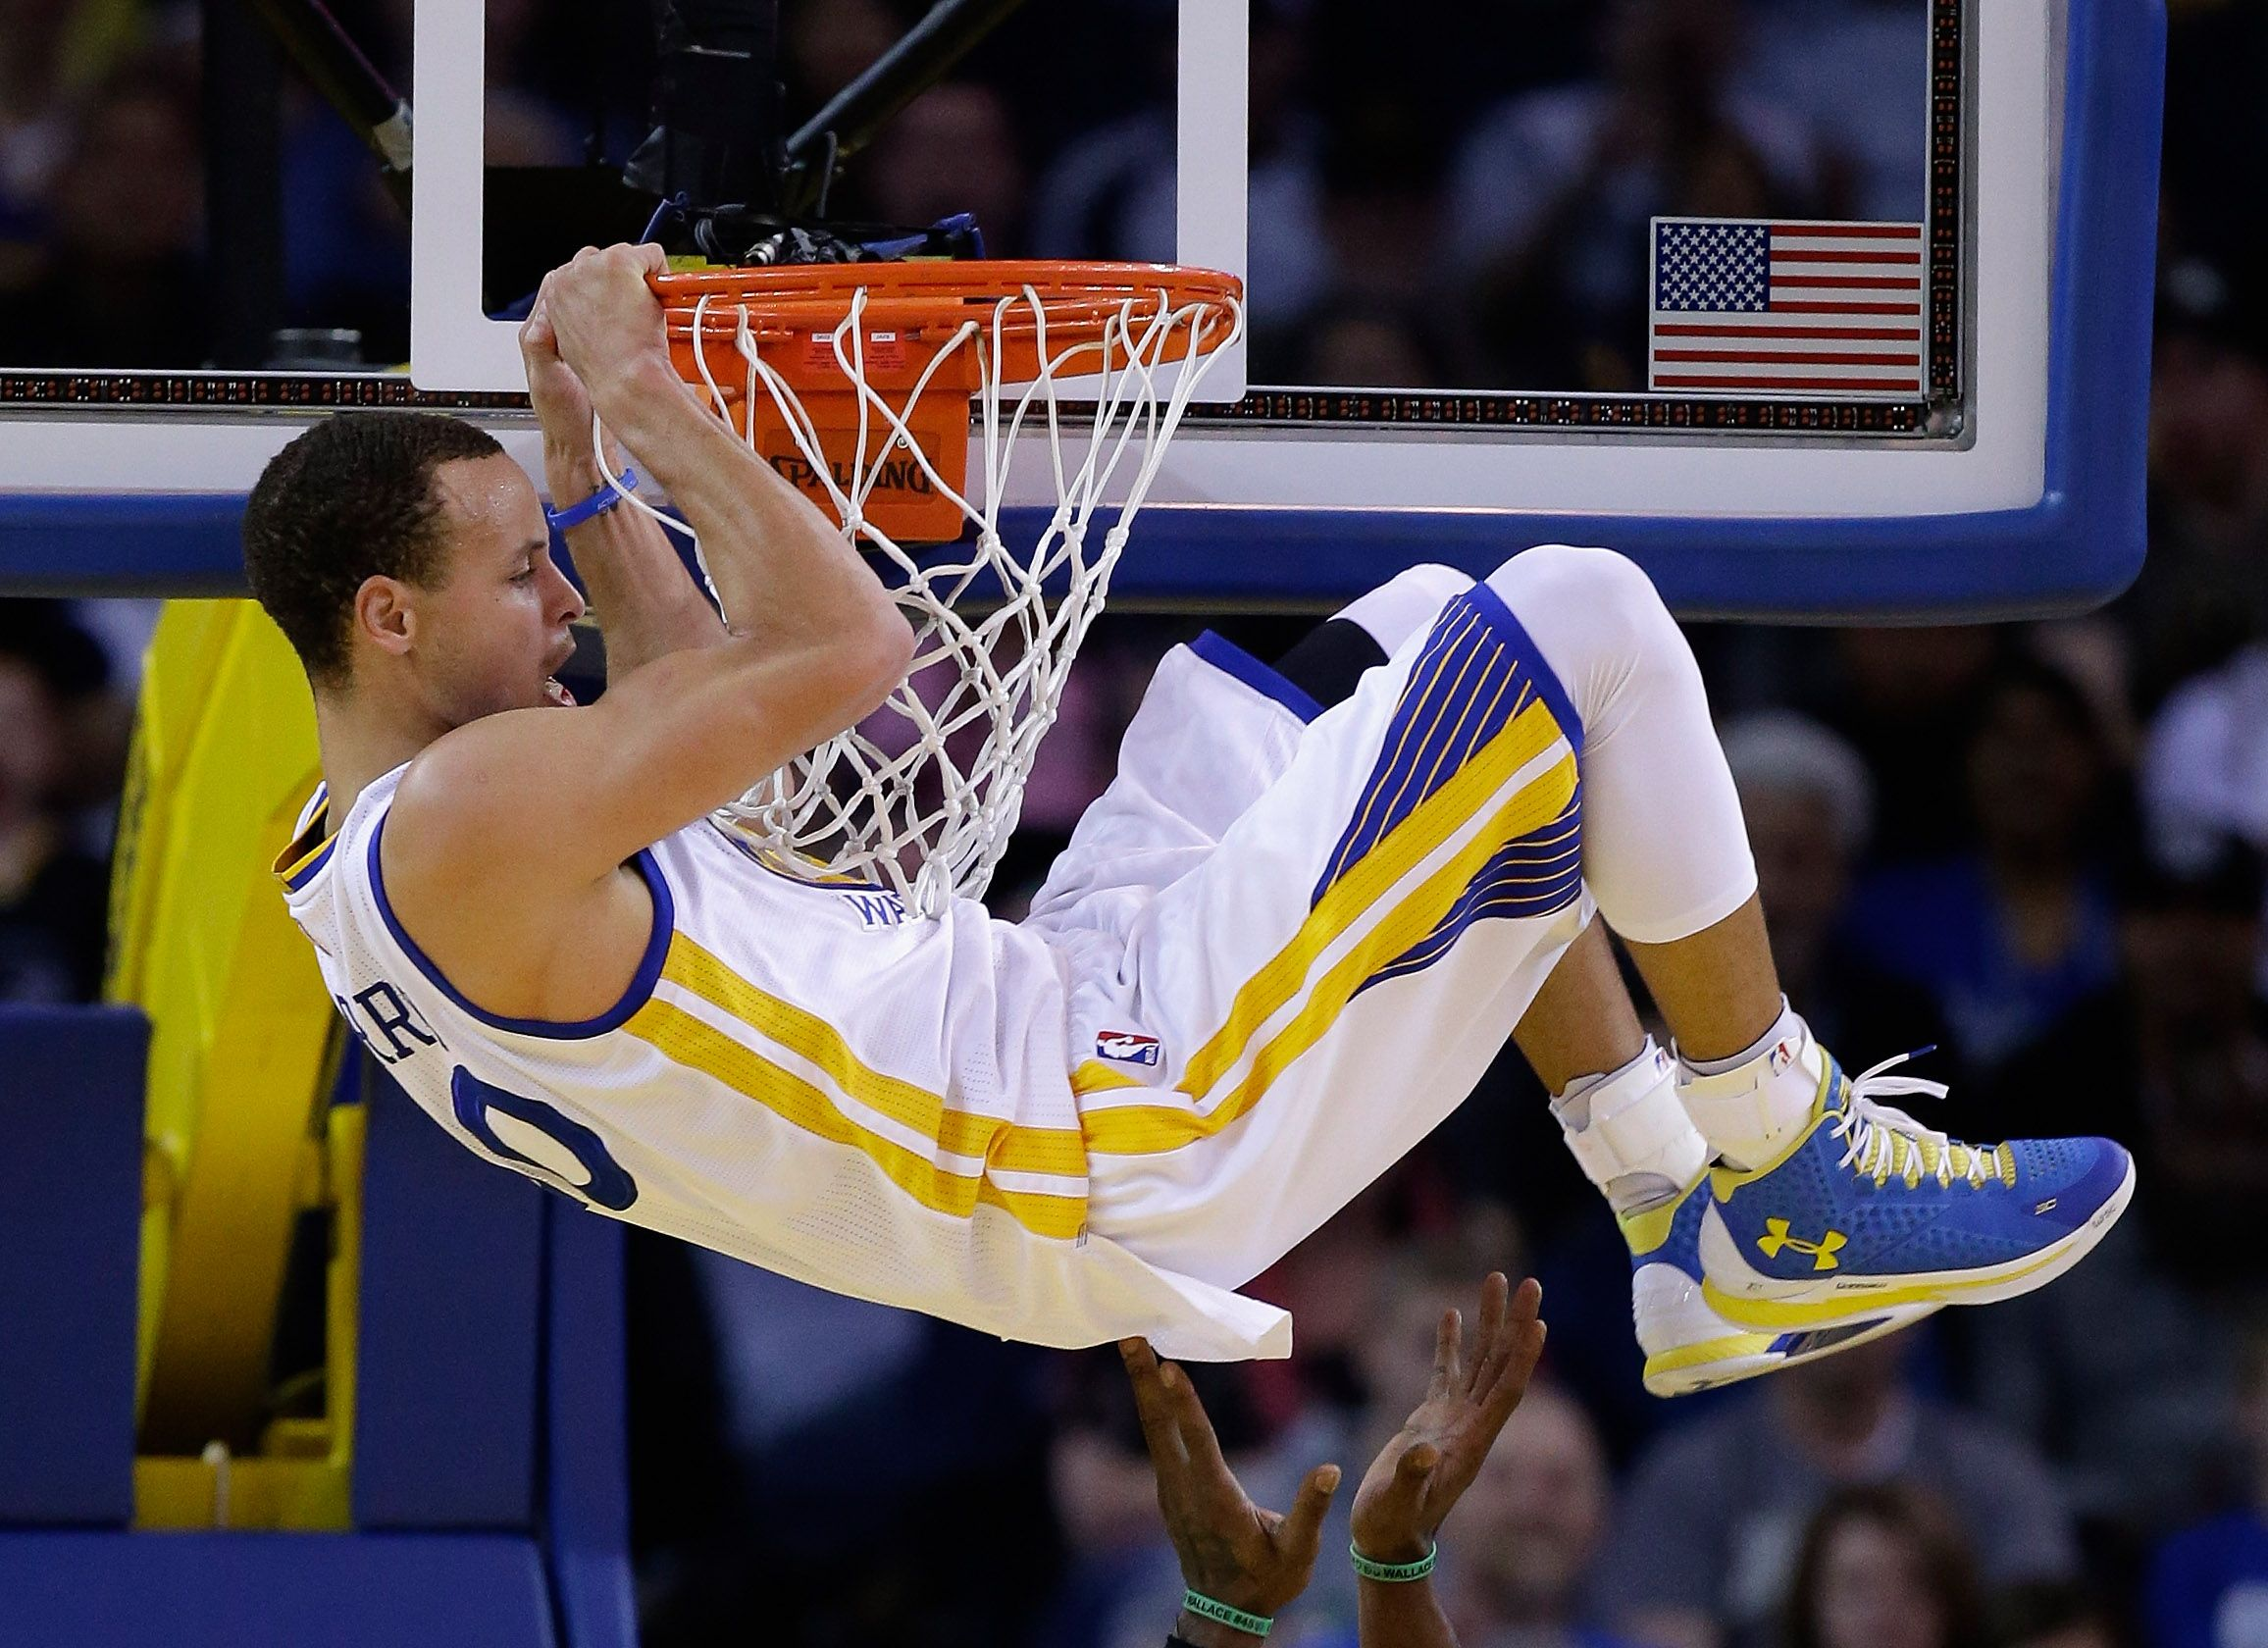 127 best #Dubnation images on Pinterest | Curry warriors, Nba players and  Basketball players